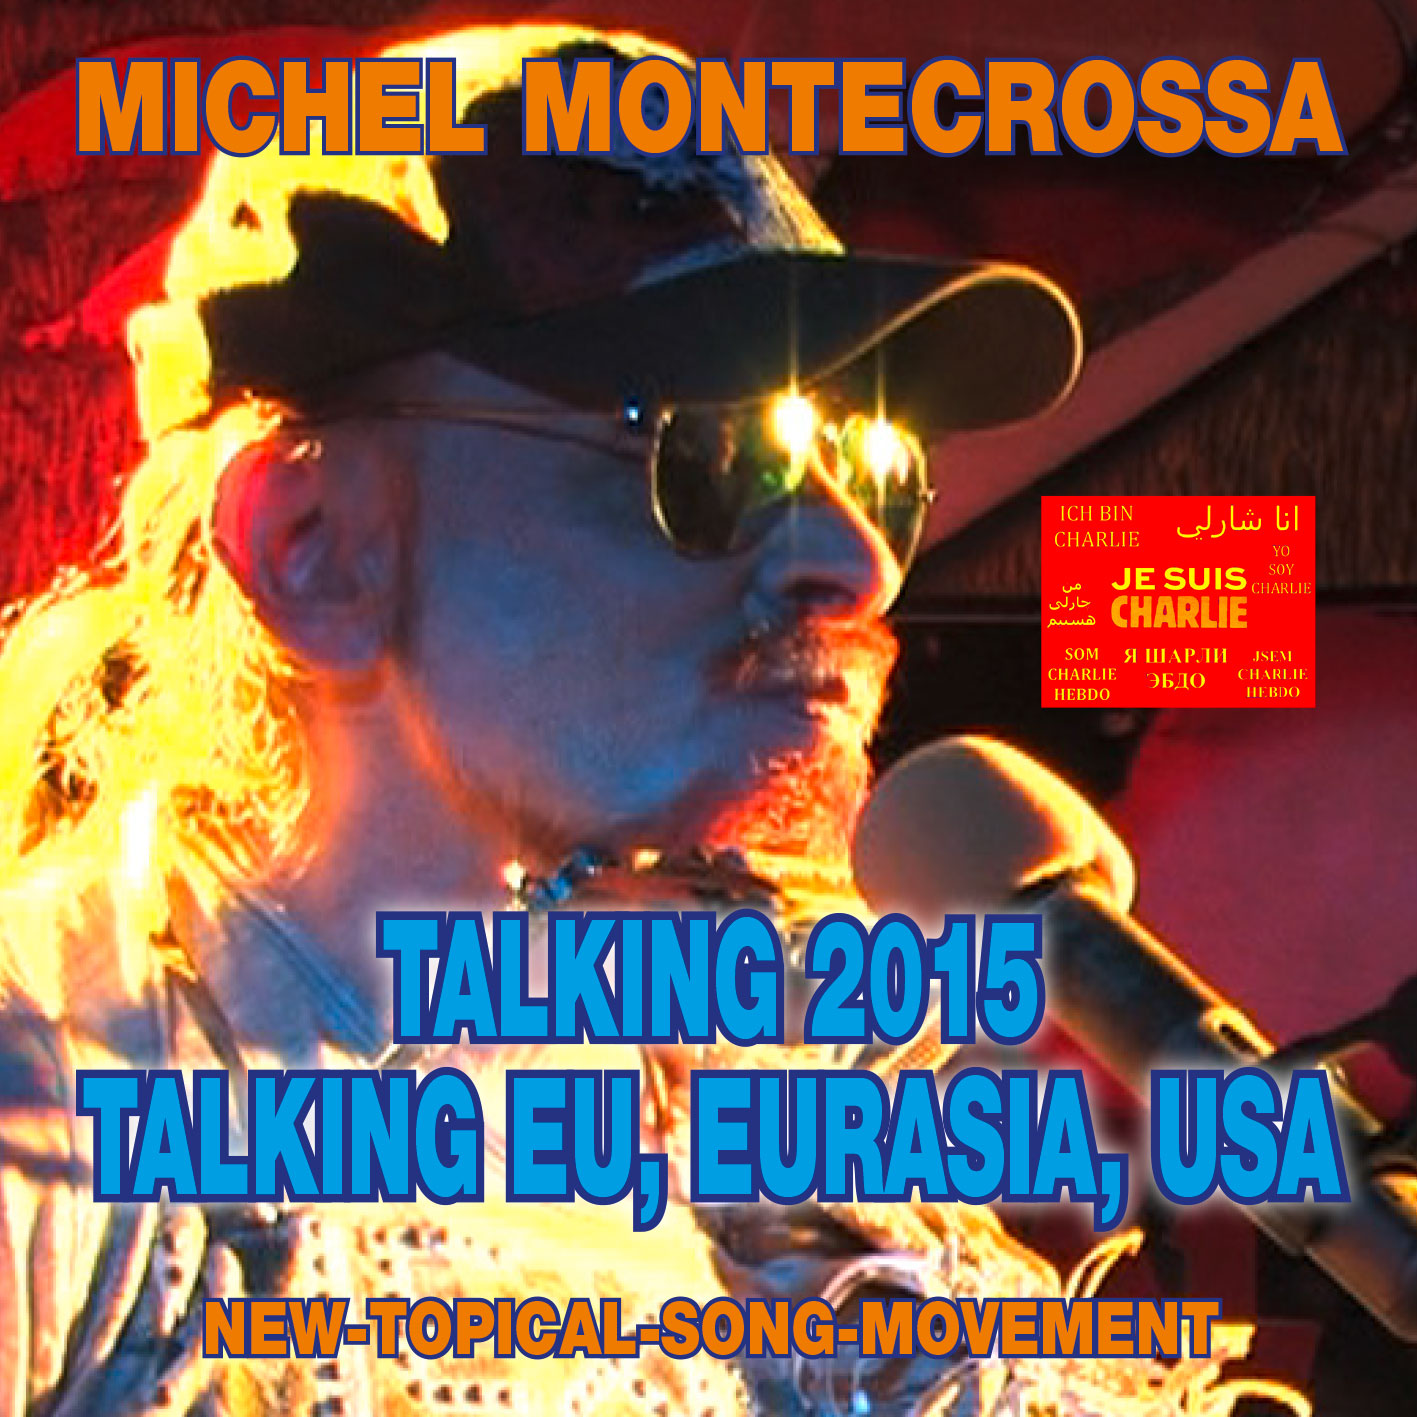 Talking 2015 - Talking EU, Eurasia and USA